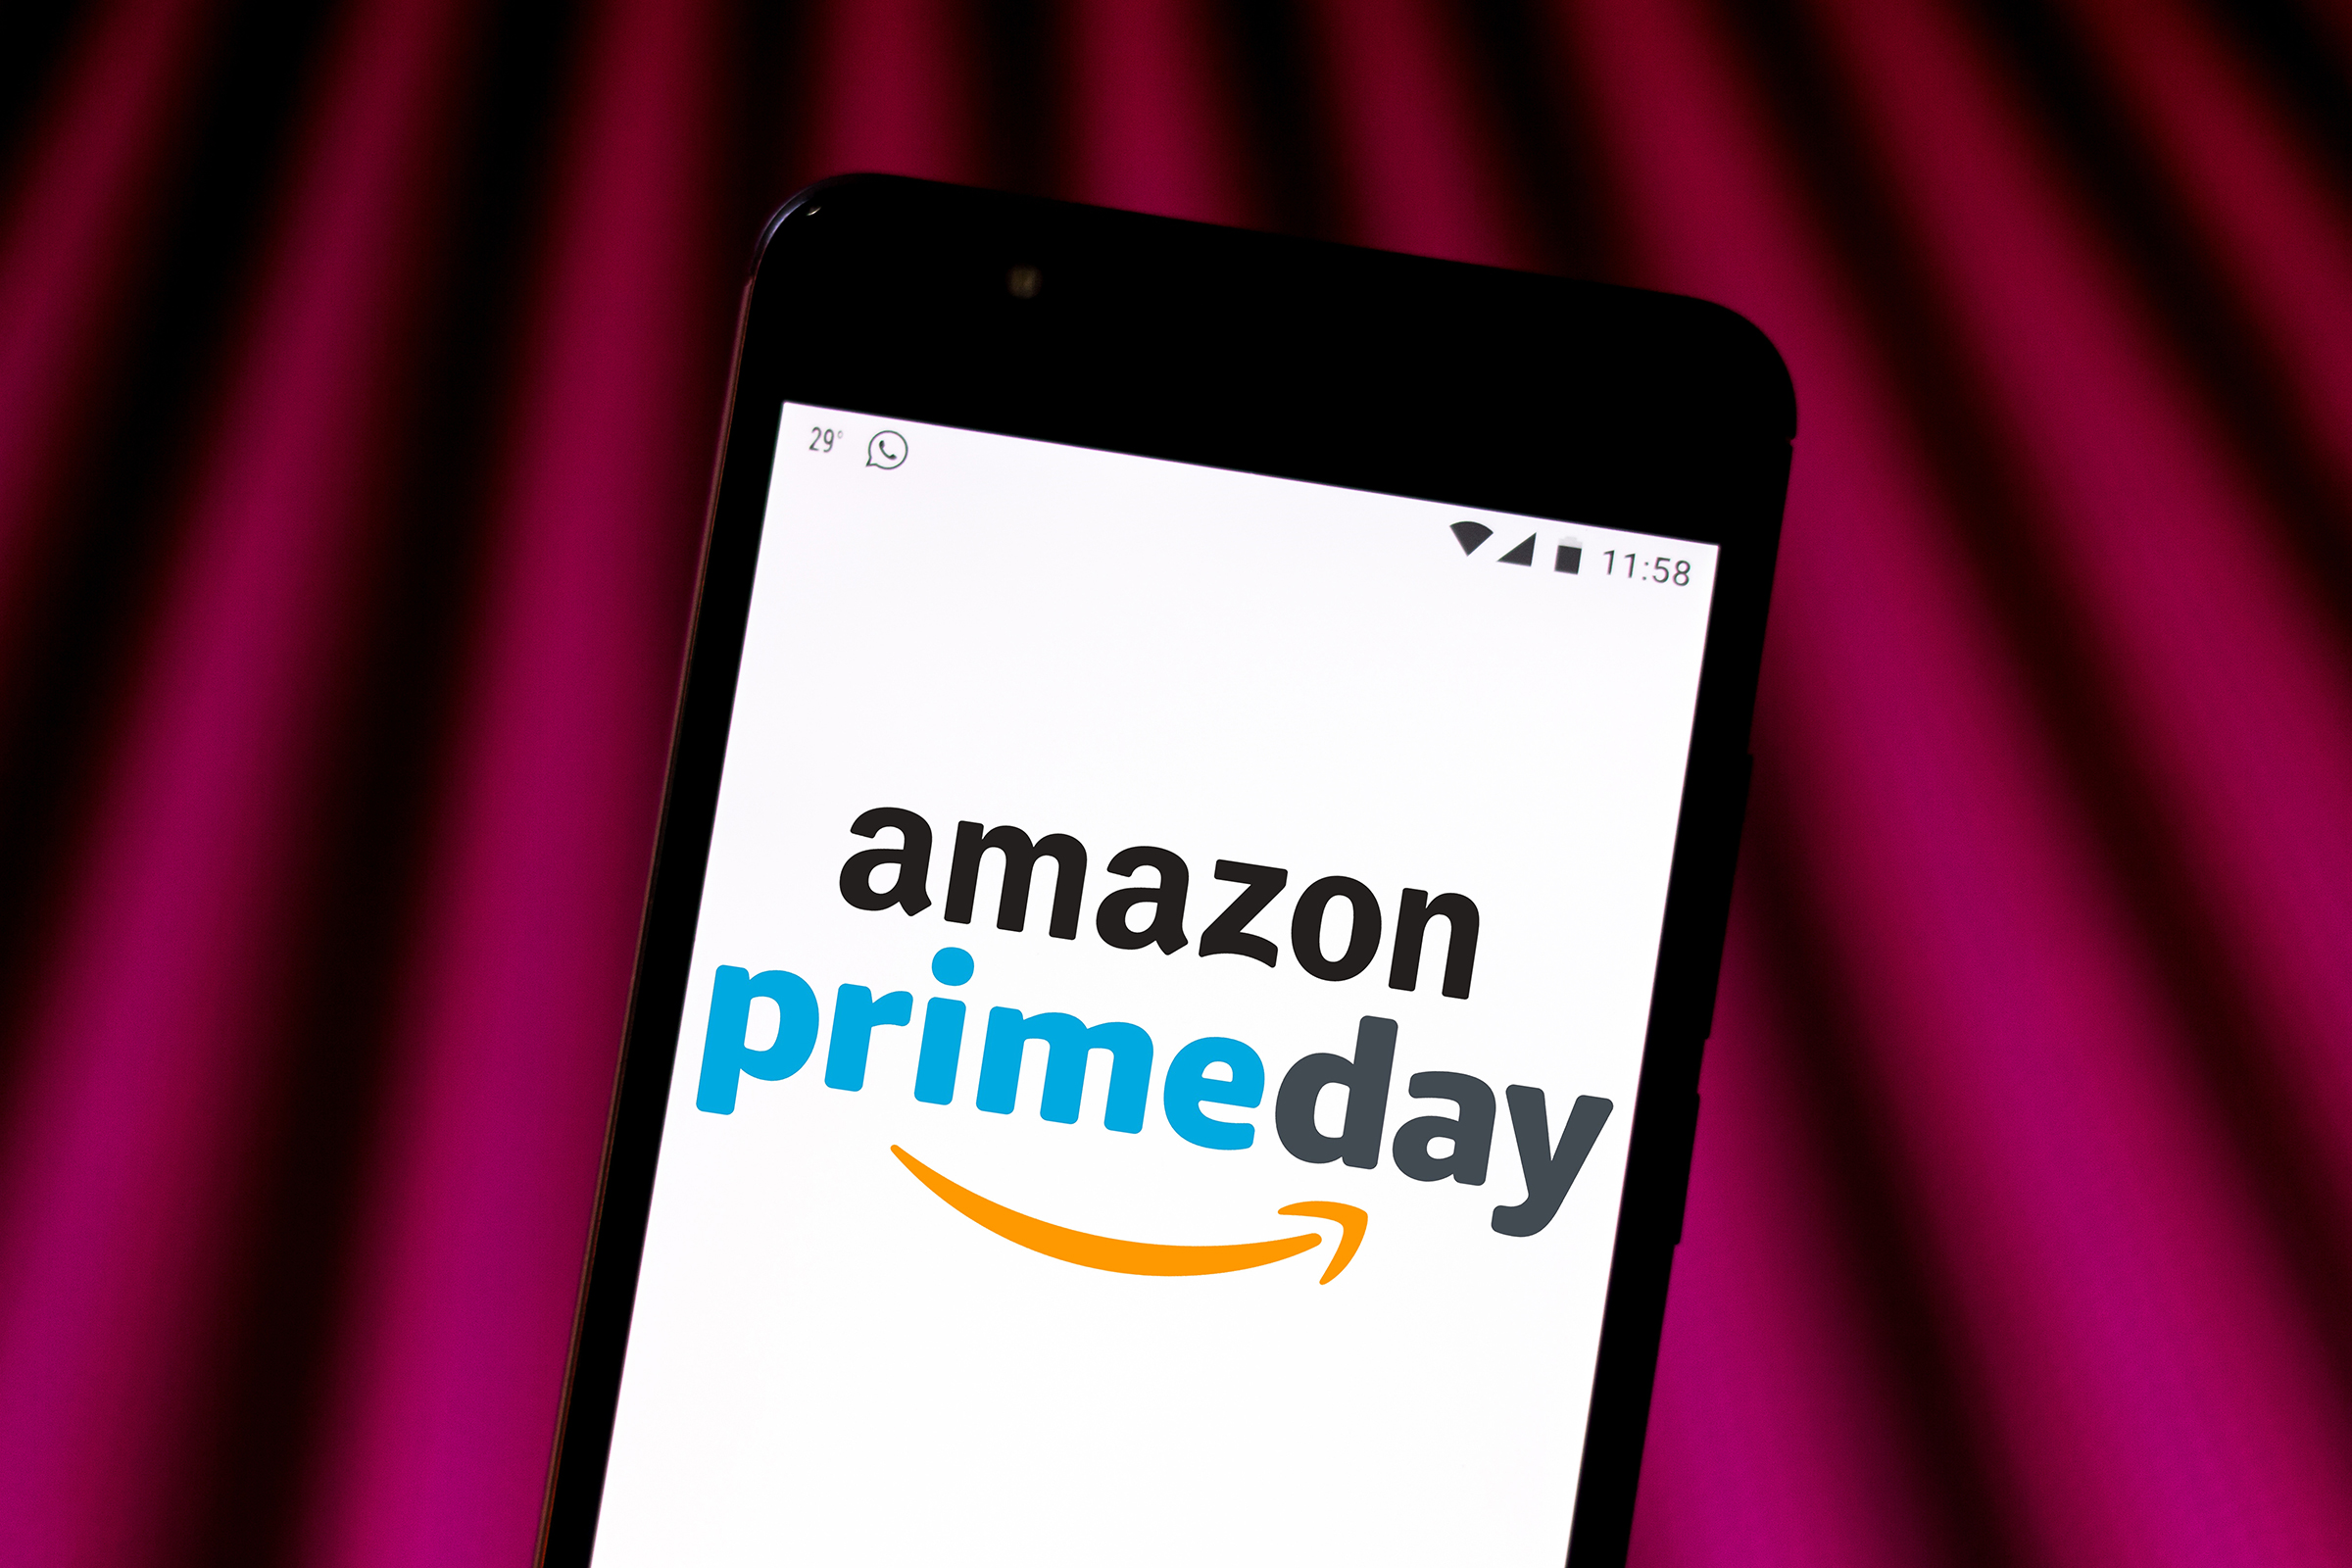 eef01f6a169 Amazon Prime Day 2019: Best Deals on TVs, Tablets, Apple Watch ...